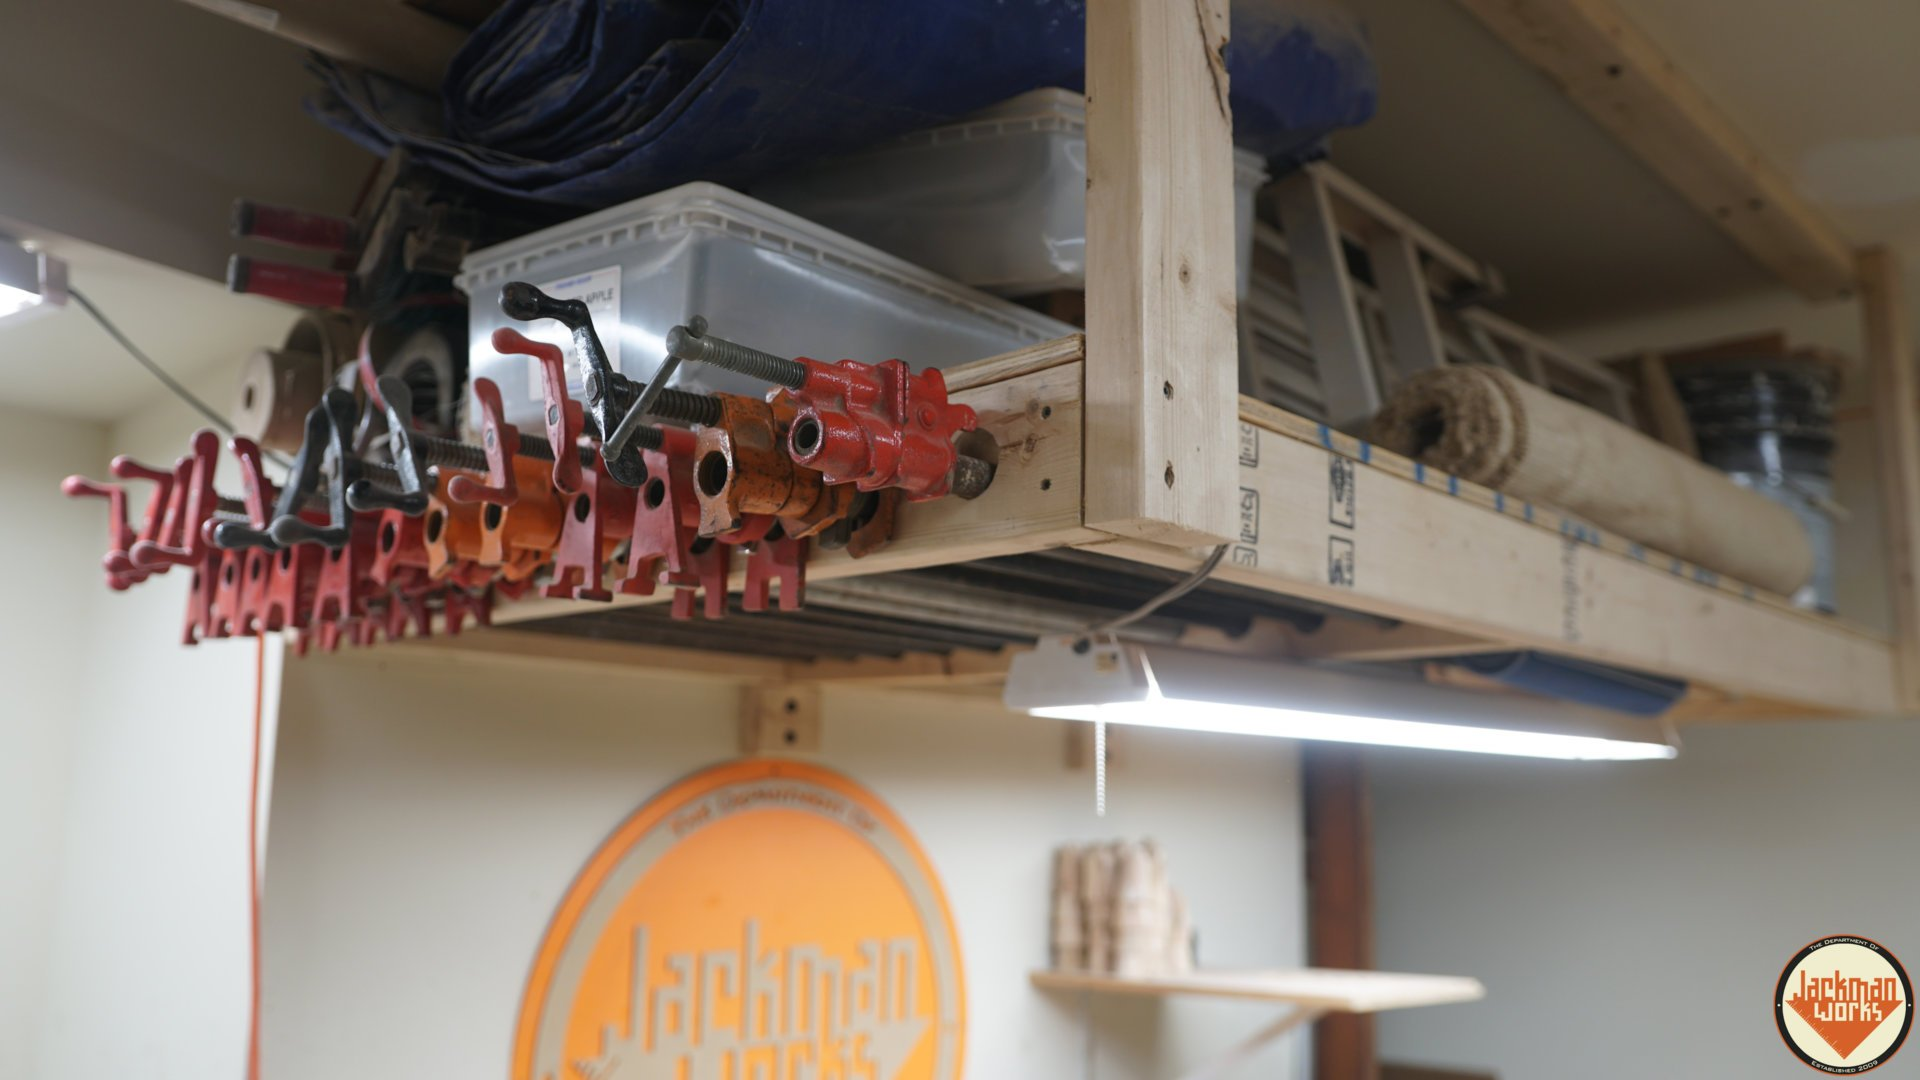 floating garage storage loft and clamp rack jackman works ideas small solutions plans woodworking projects shelves wasted space plywood inch brackets bunnings shelving kitchen